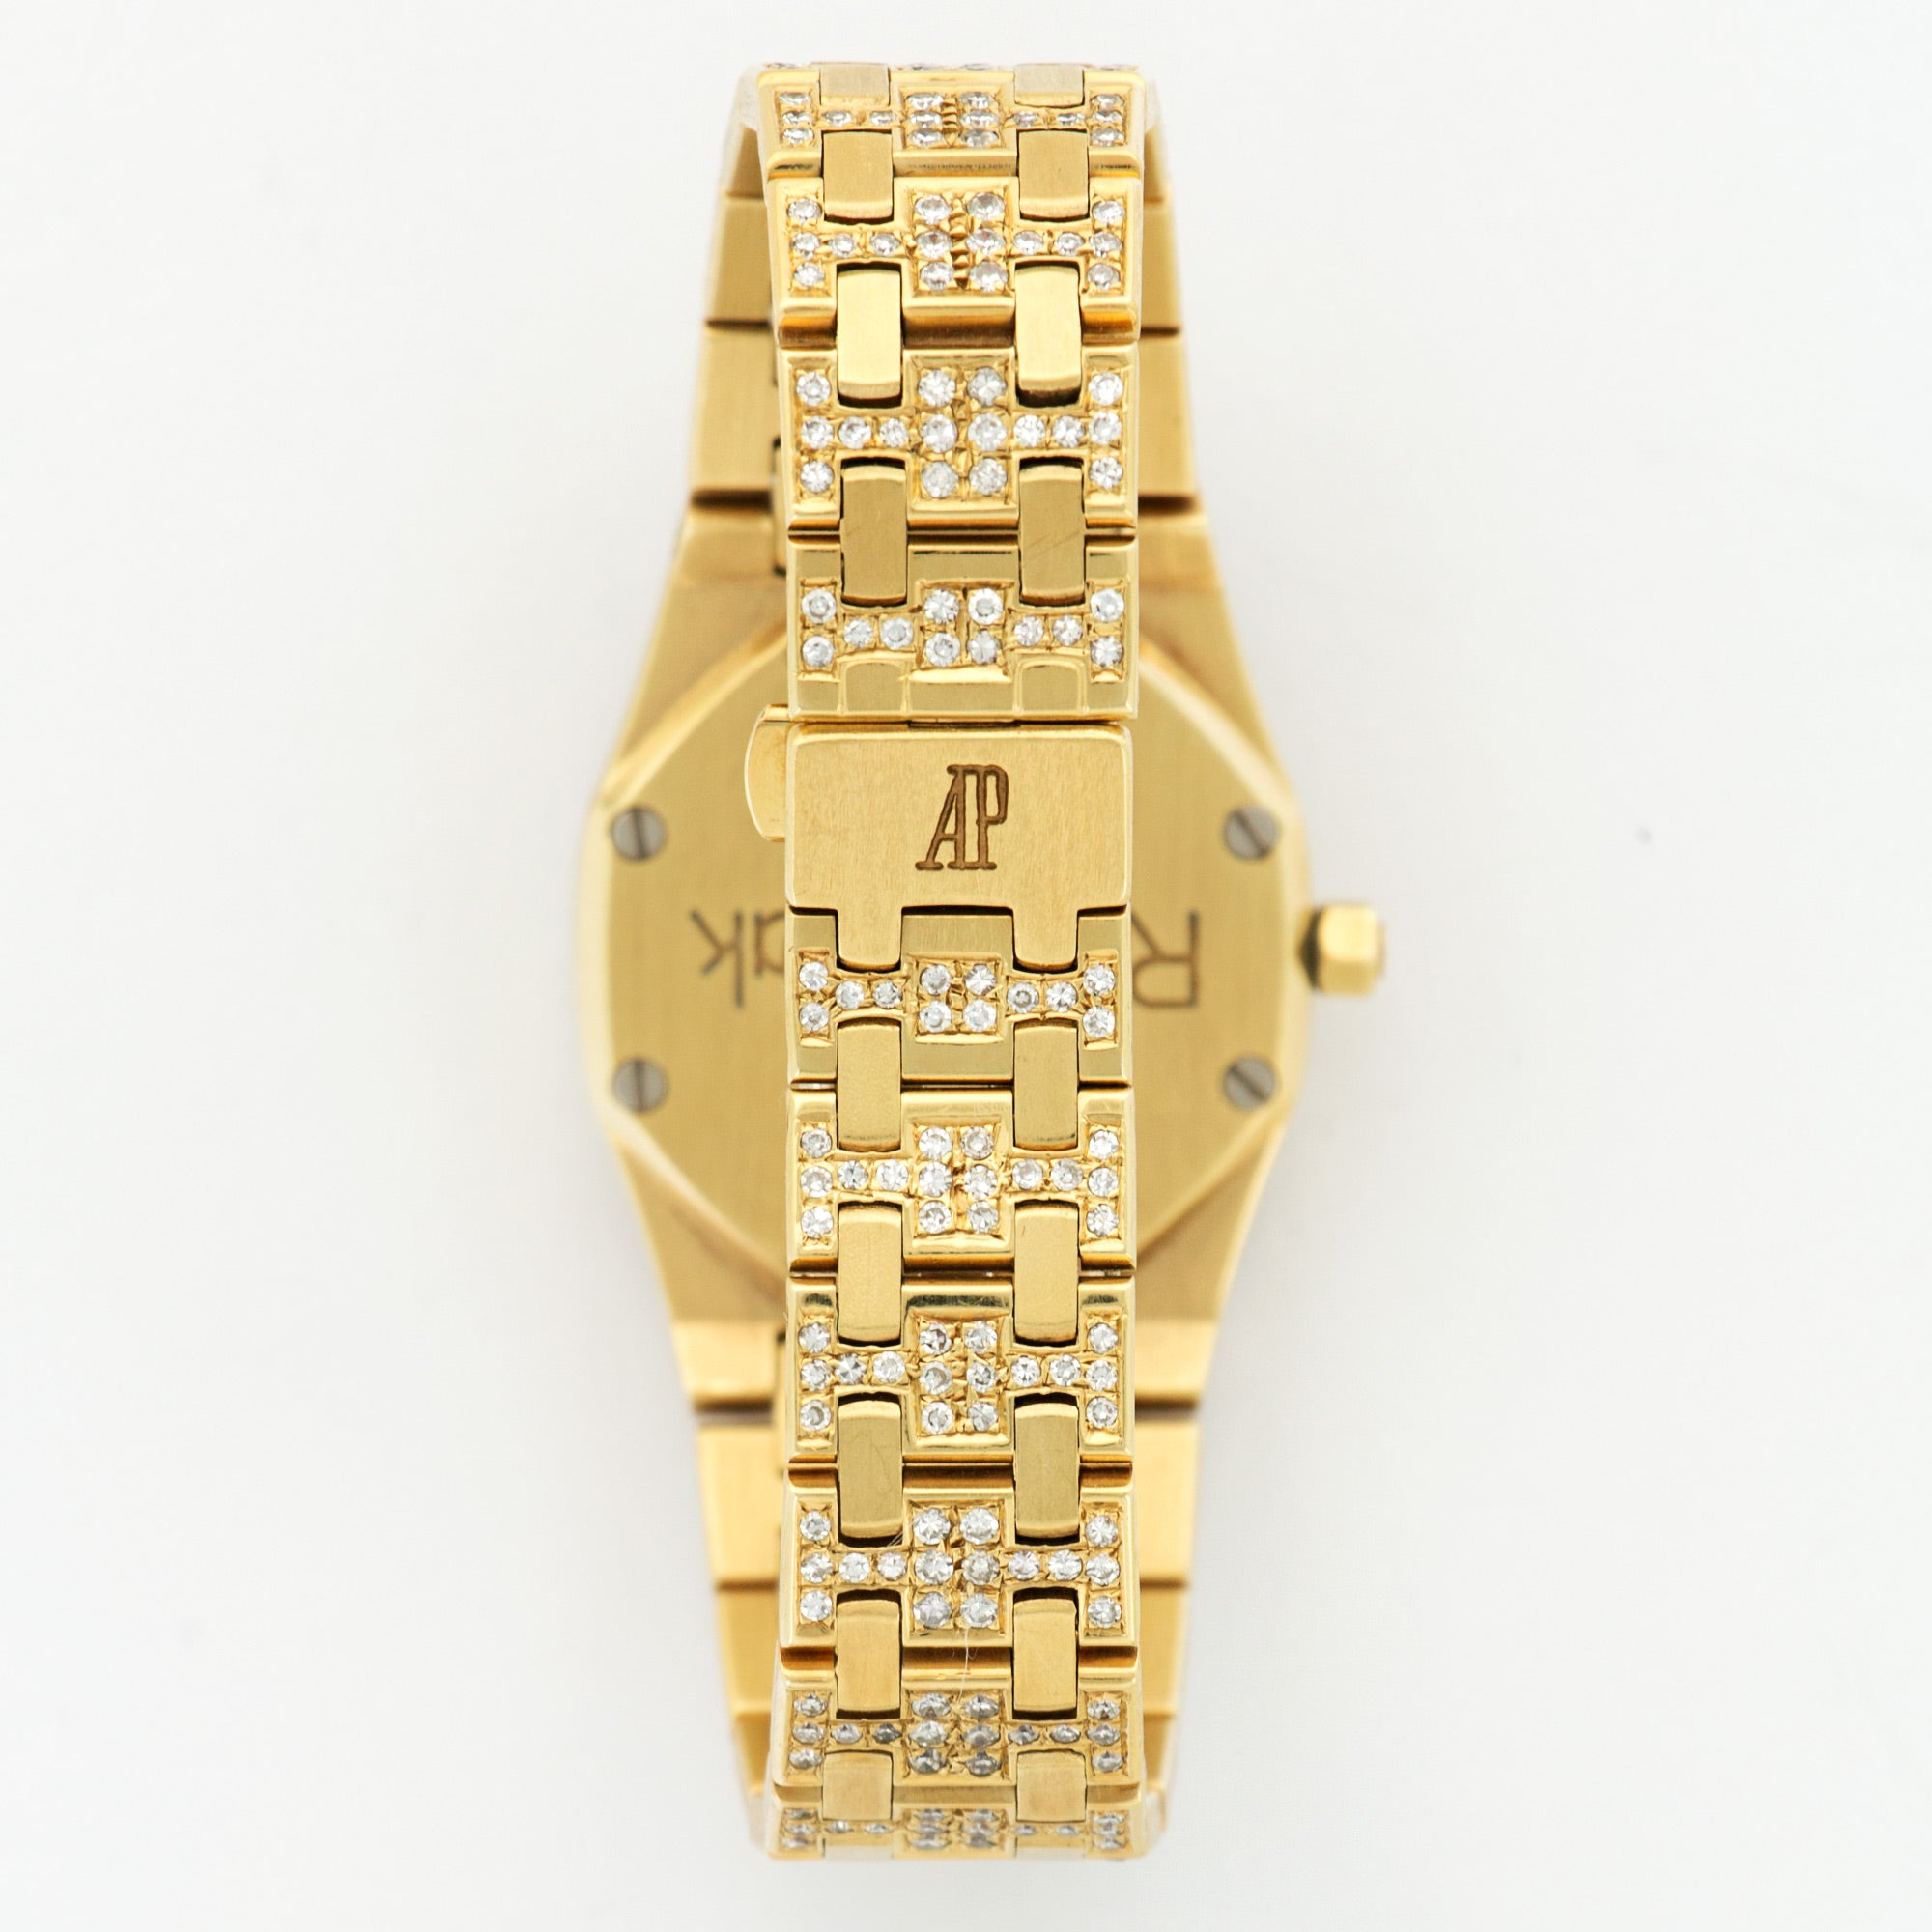 Audemars Piguet Royal Oak N/A 18k YG  Excellent Ladies 18k YG Pave Diamond with Ruby markers 24.6mm Quartz 1990s Yellow Gold Bracelet with Diamonds N/A